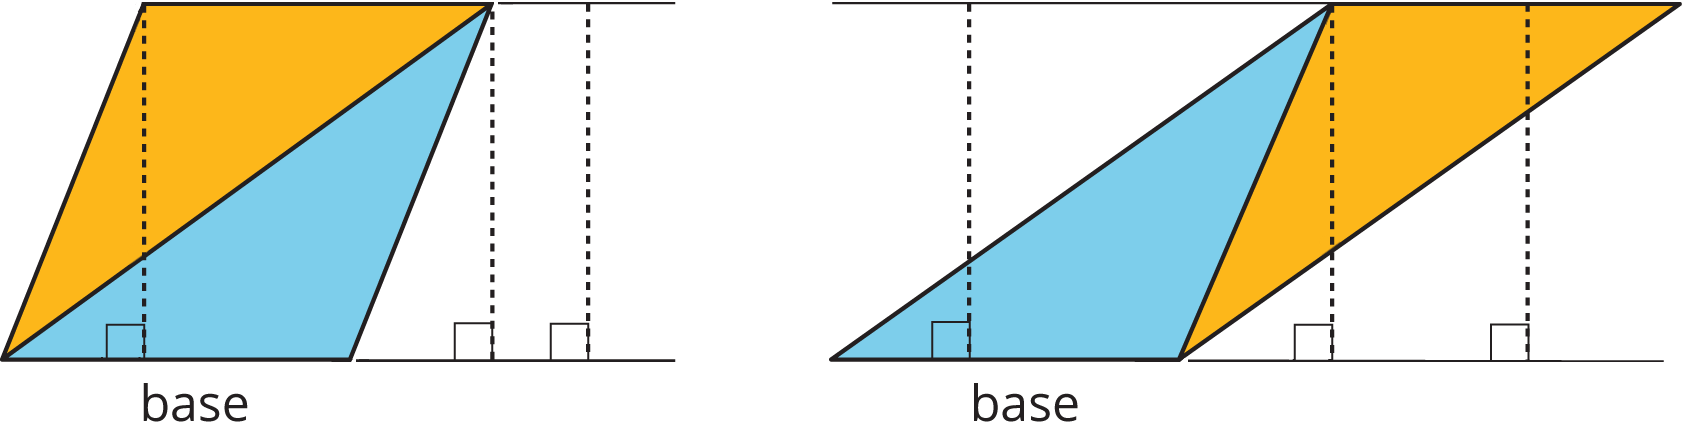 """Two identical triangles each, with a copy composing the triangle into two different parallelograms. In each parallelogram has the bottom side labeled """"base"""" and dashed lines at right angles to the base indicating the height of the parallelogram."""